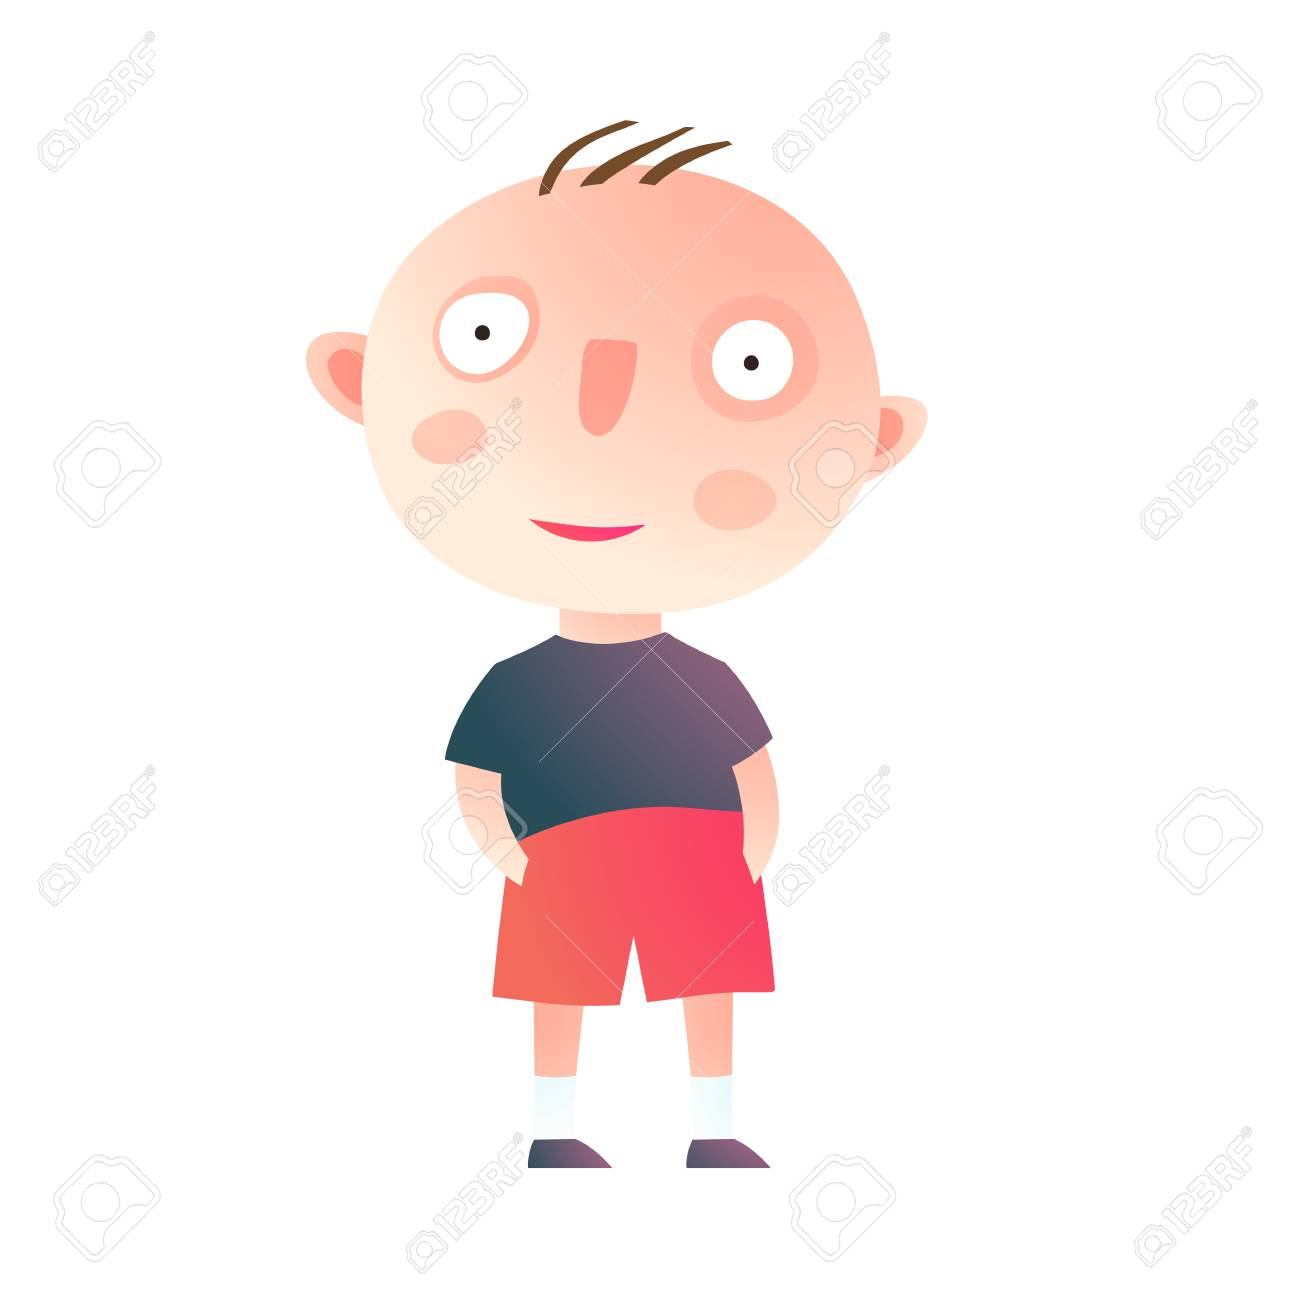 Clip art baby boy standing hands in pockets isolated. Vector...